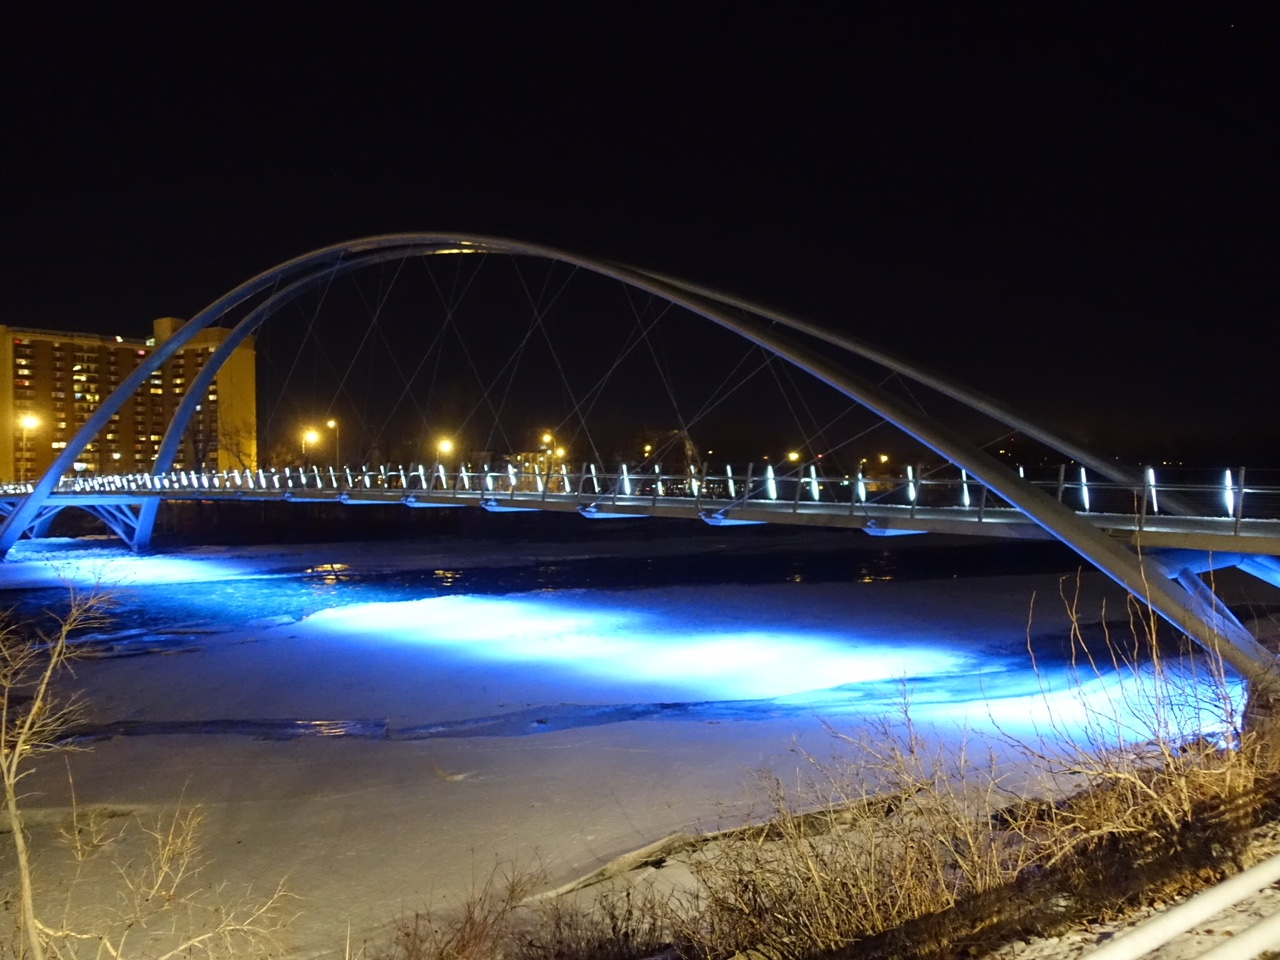 George C. King Bridge over the Bow River connects East Village to St. Patrick's Island and Memorial Drive.